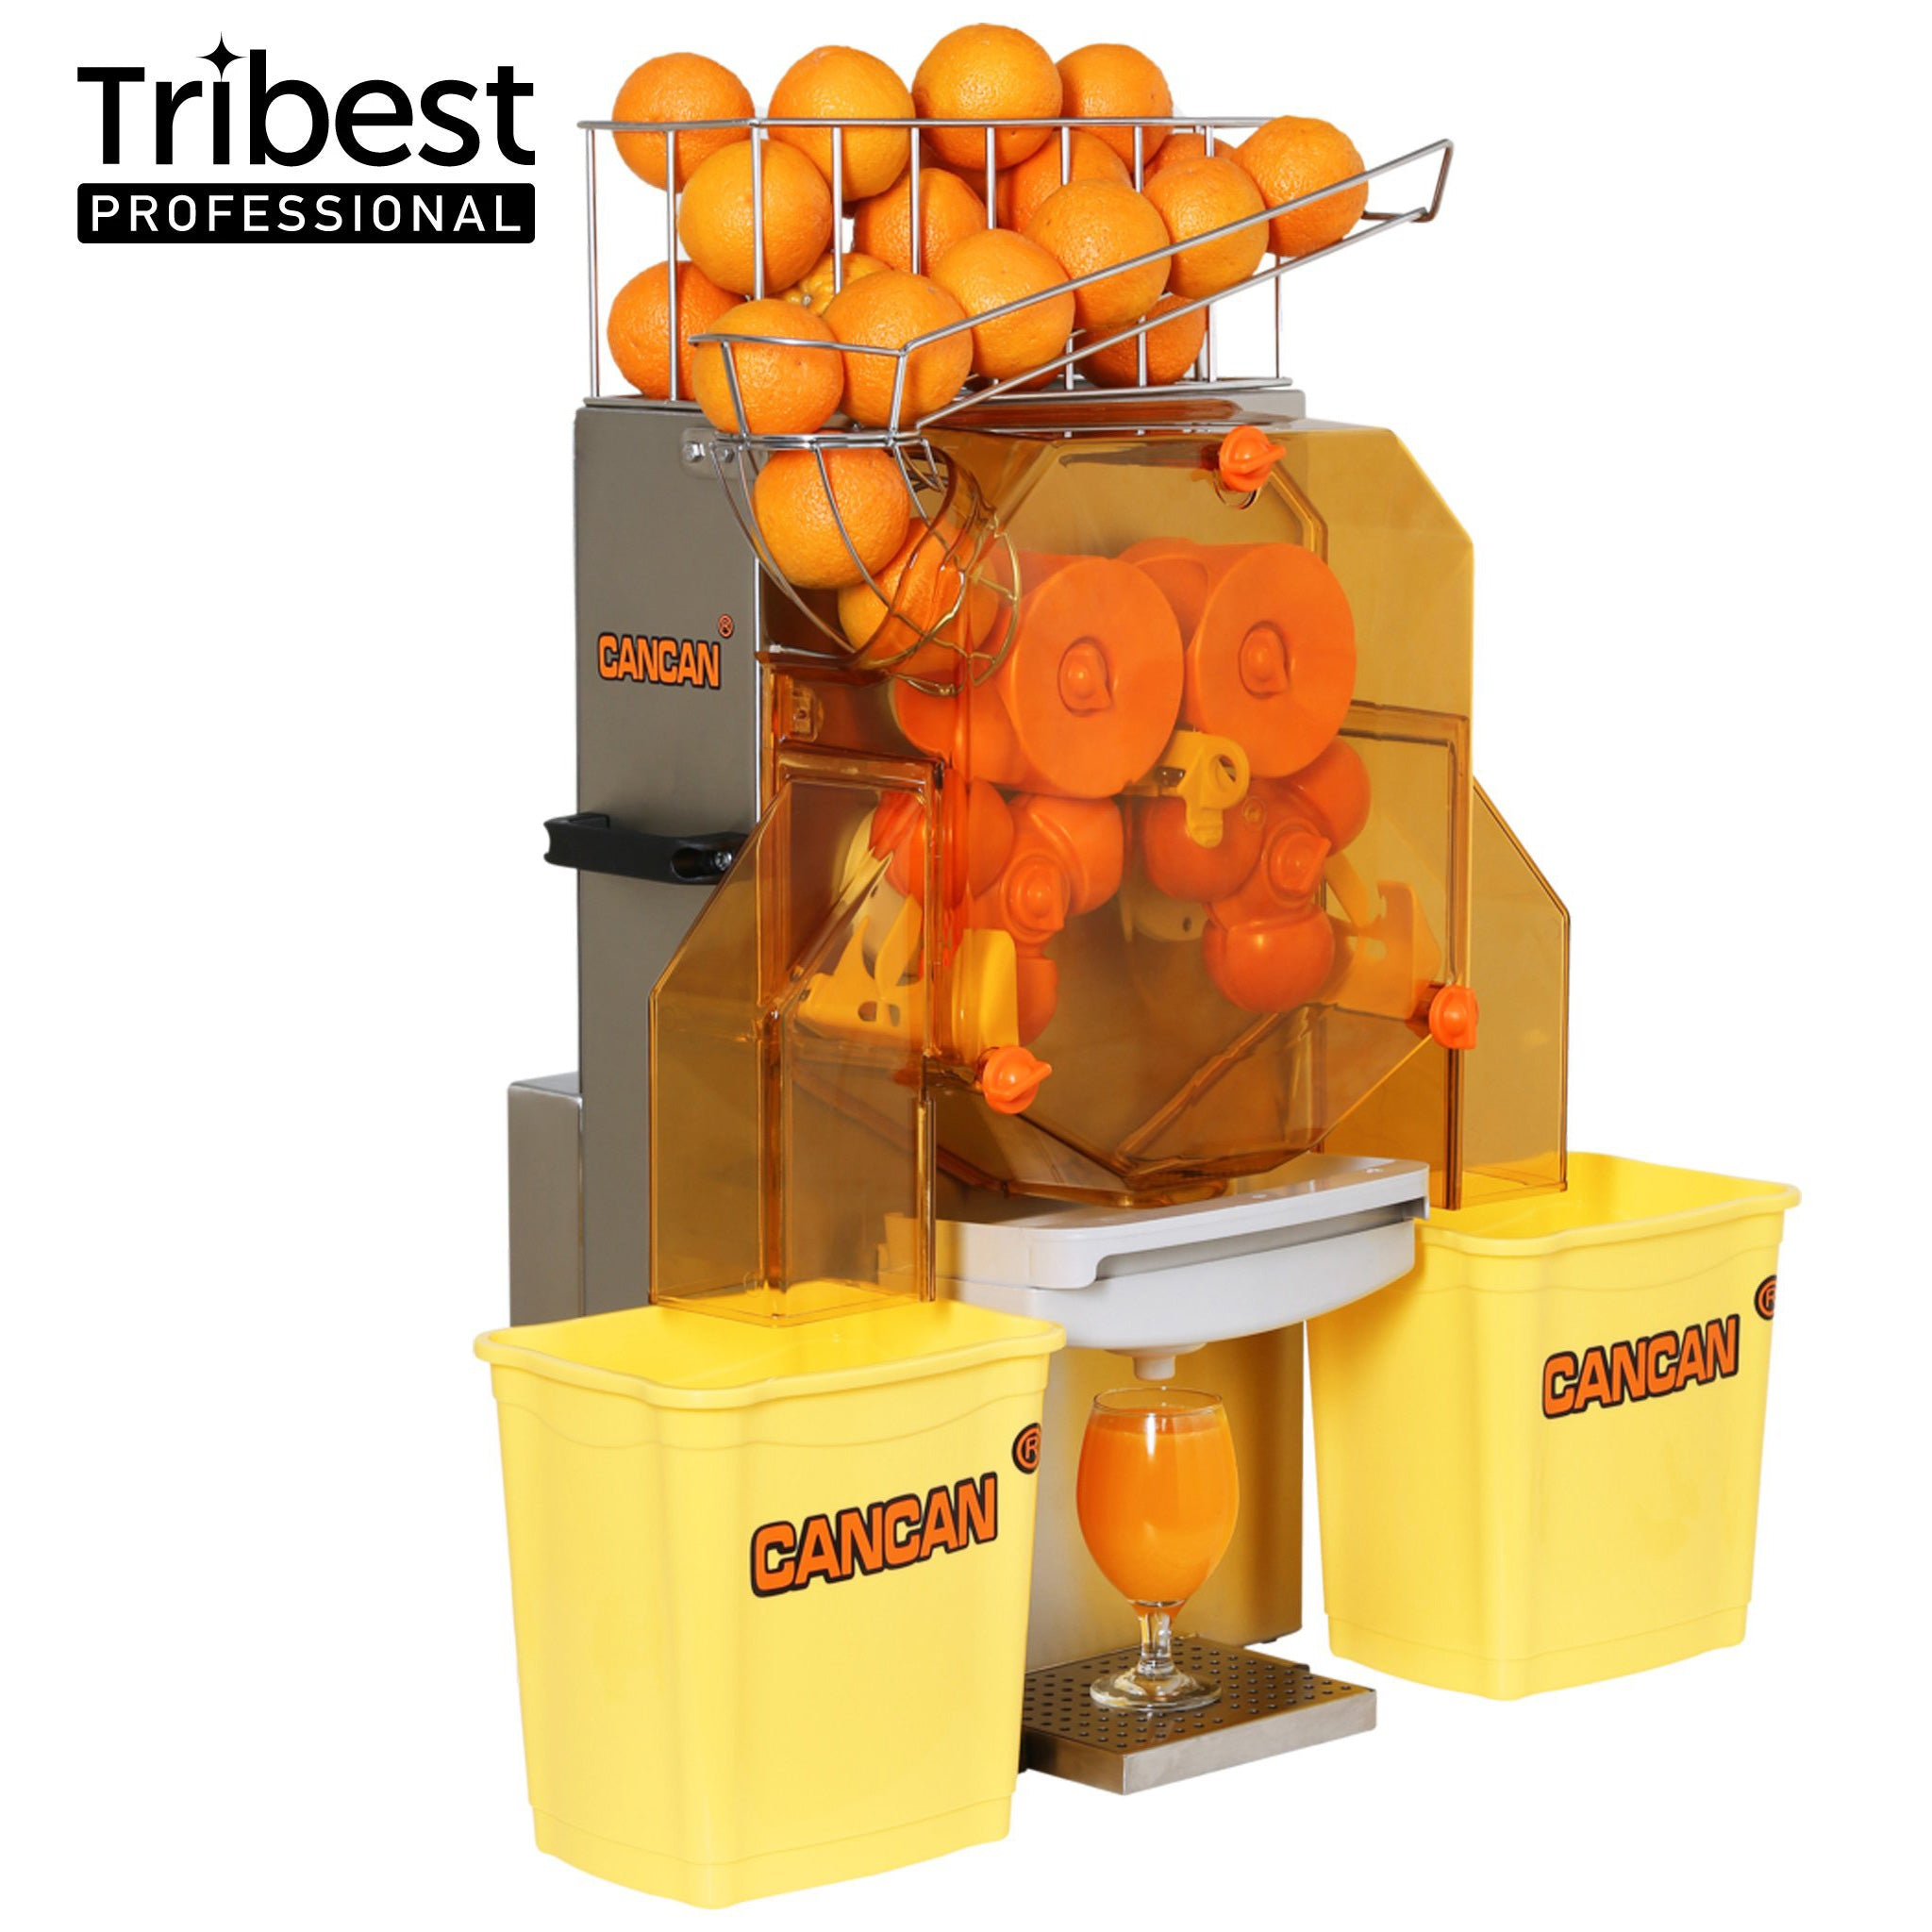 Tribest Professional Cancan Automatic Orange Juicer